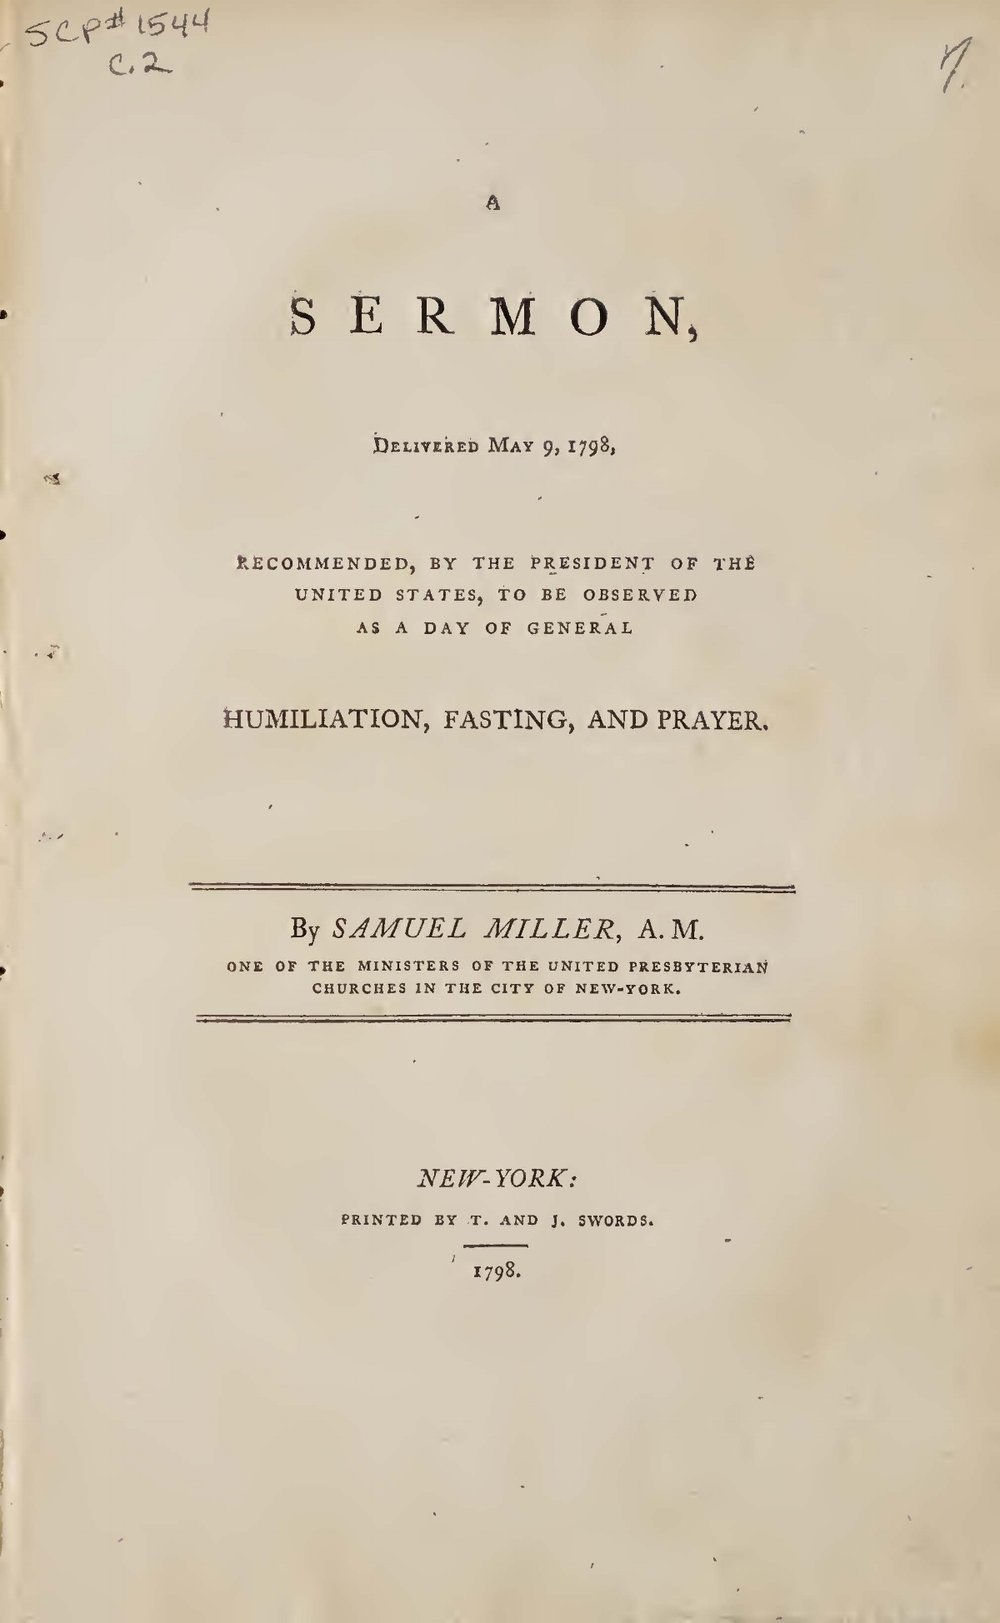 Miller, Samuel, A Sermon Delivered May 9, 1798 Title Page.jpg